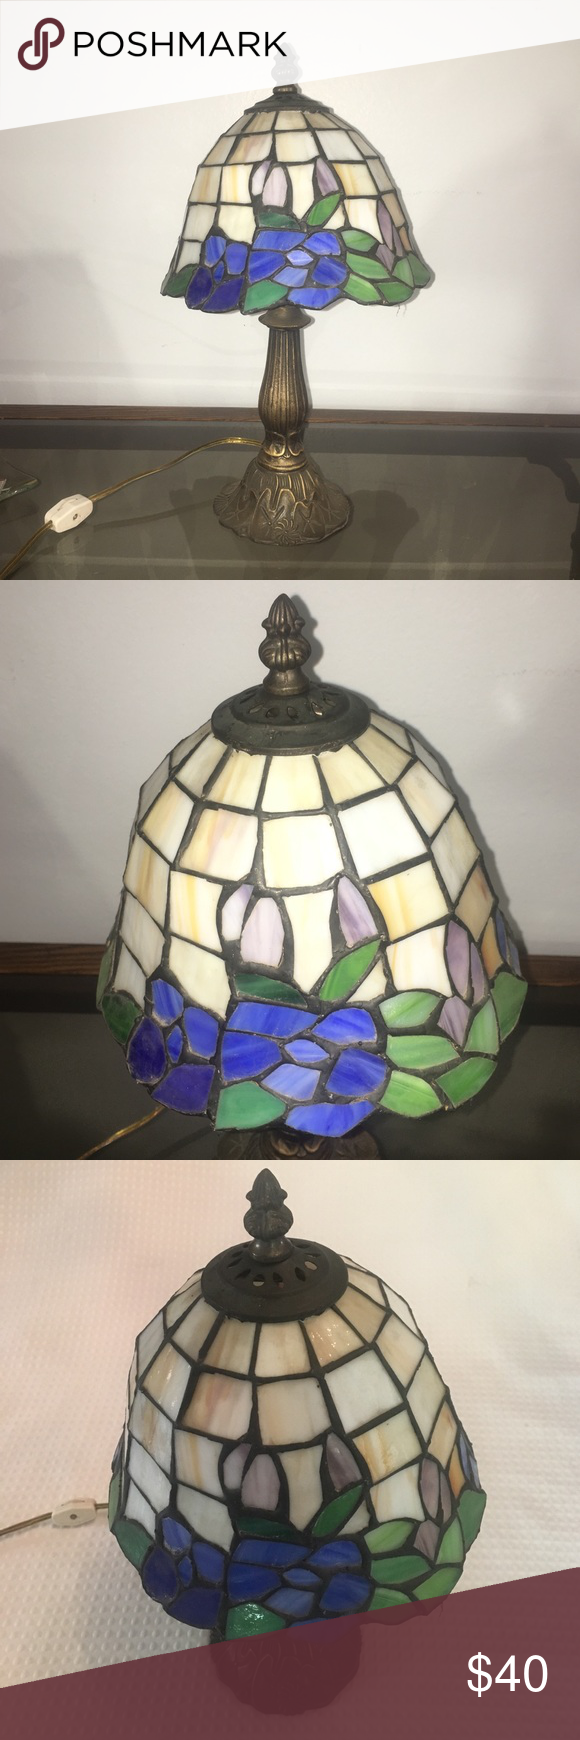 """Vintage 14"""" Tiffany Inspired Glass Lamp In excellent working condition. Takes a 25 watt chandelier bulb. Perfect for a bedside or dressing table. 14"""" tall. Other"""